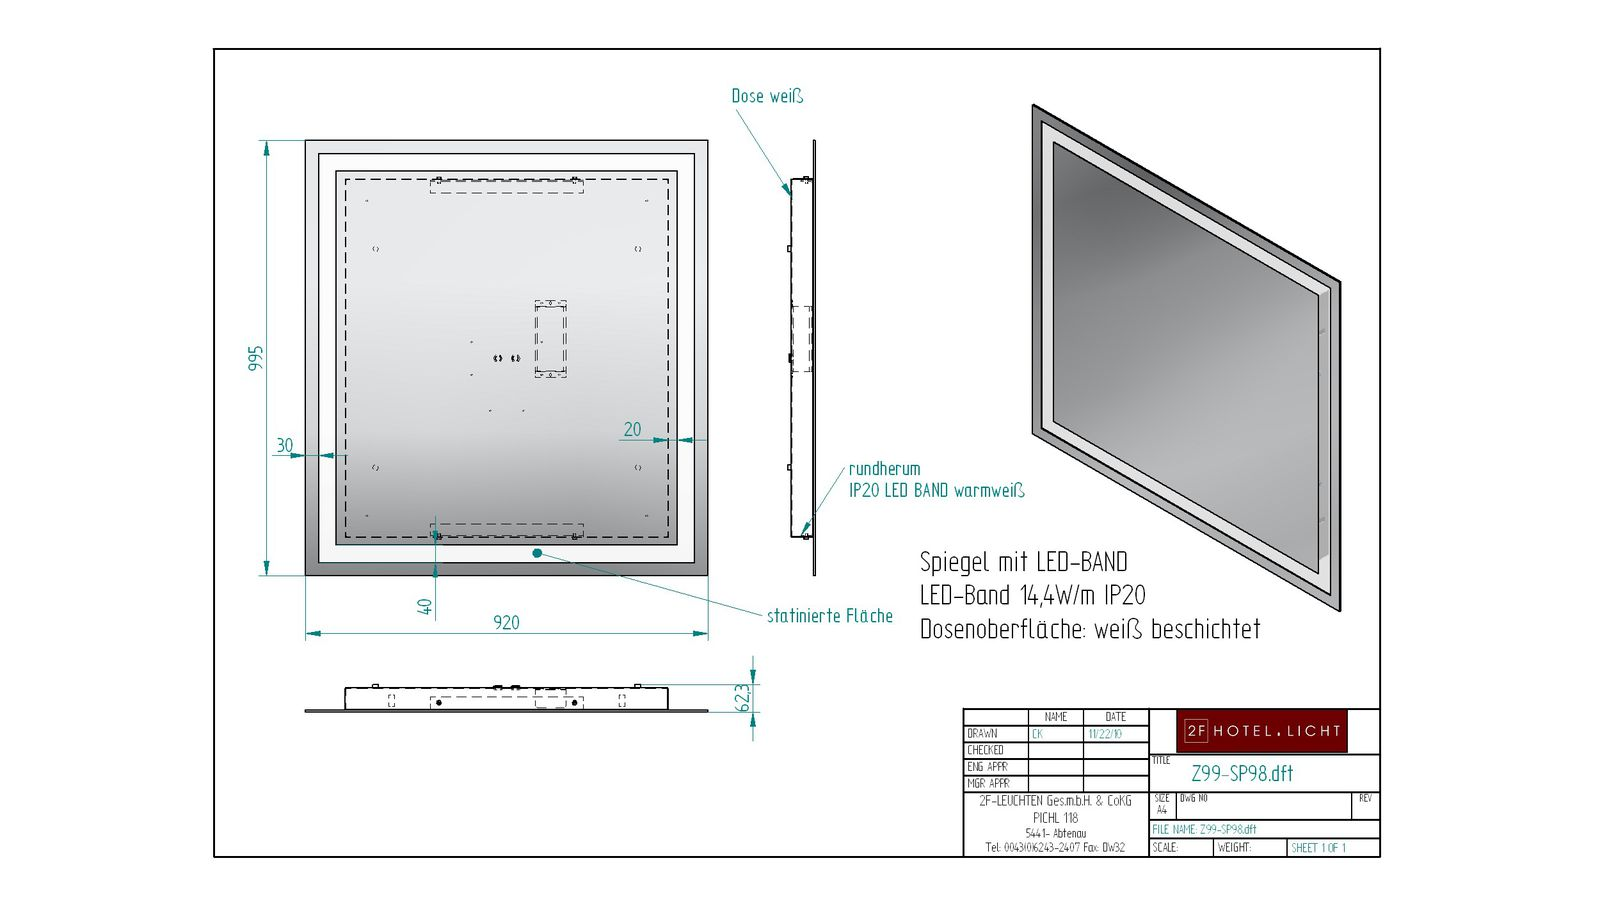 mirror, wide=920mm, height=995mm, techn. details: LED 14,4W 24V